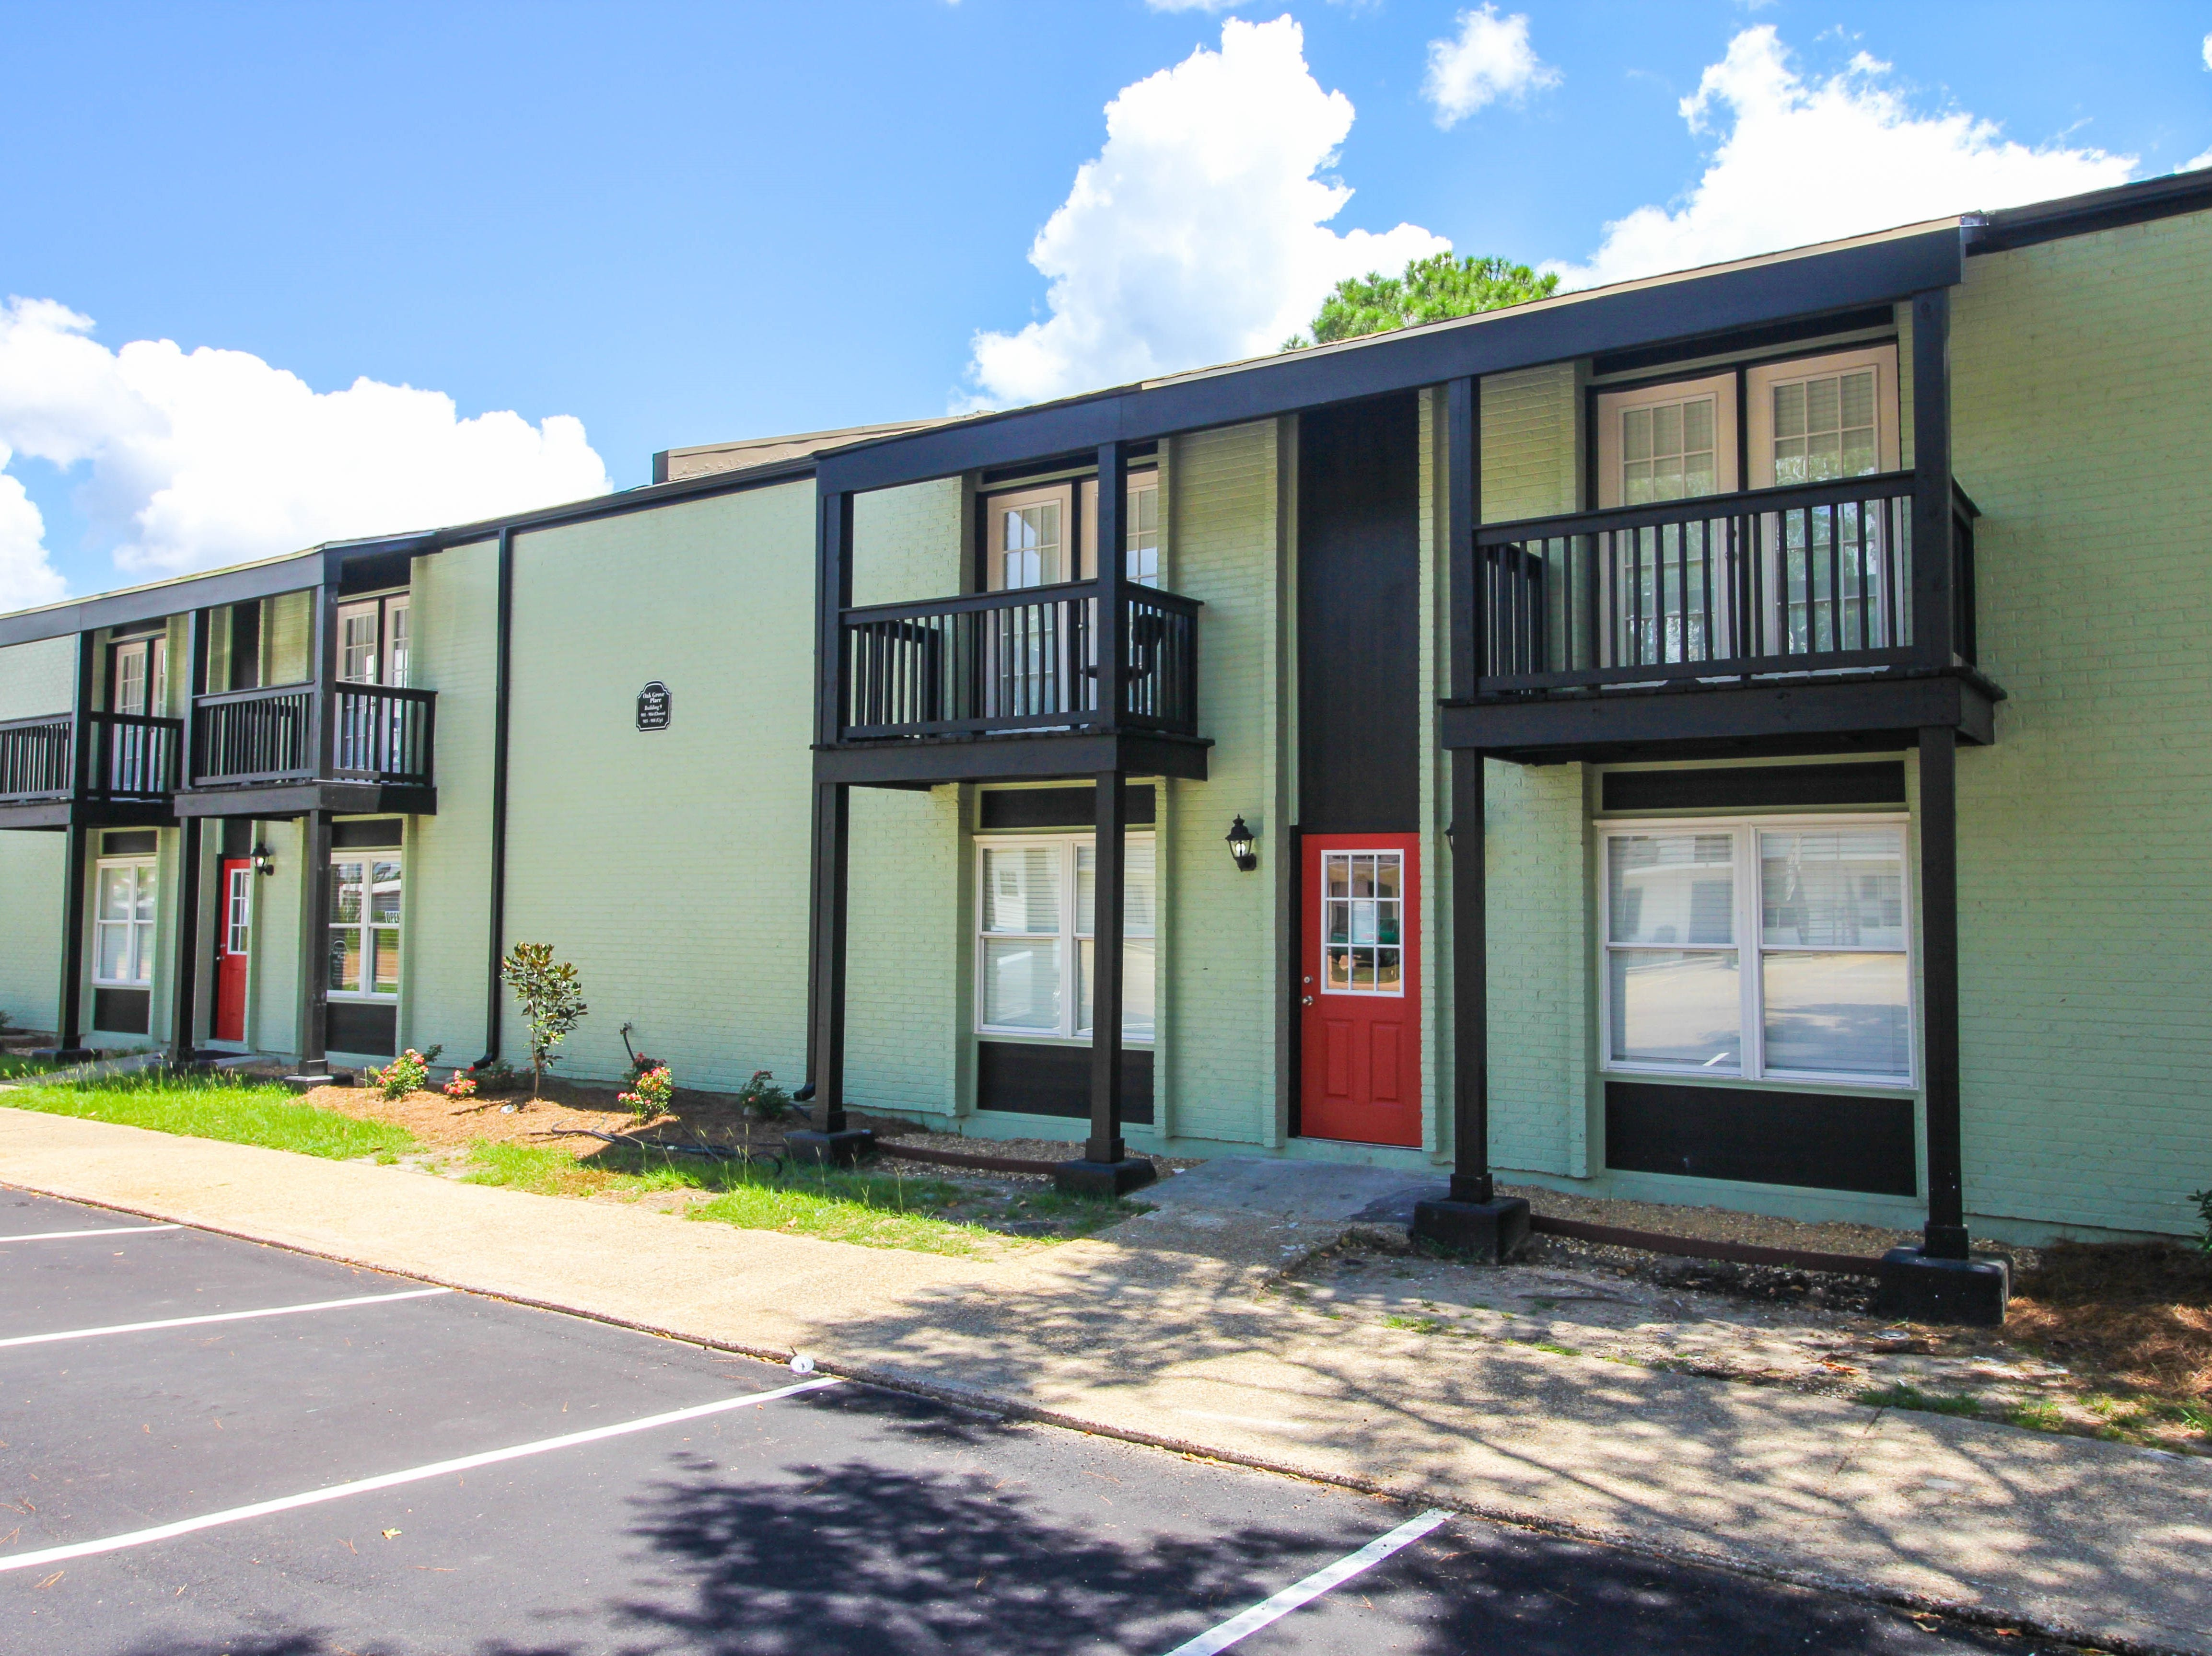 The newly renovated Oak Grove Place Apartment Homes at 2000 Oak Grove Road. Demolishing began in late 2017 and the first building was completed in July 2018.